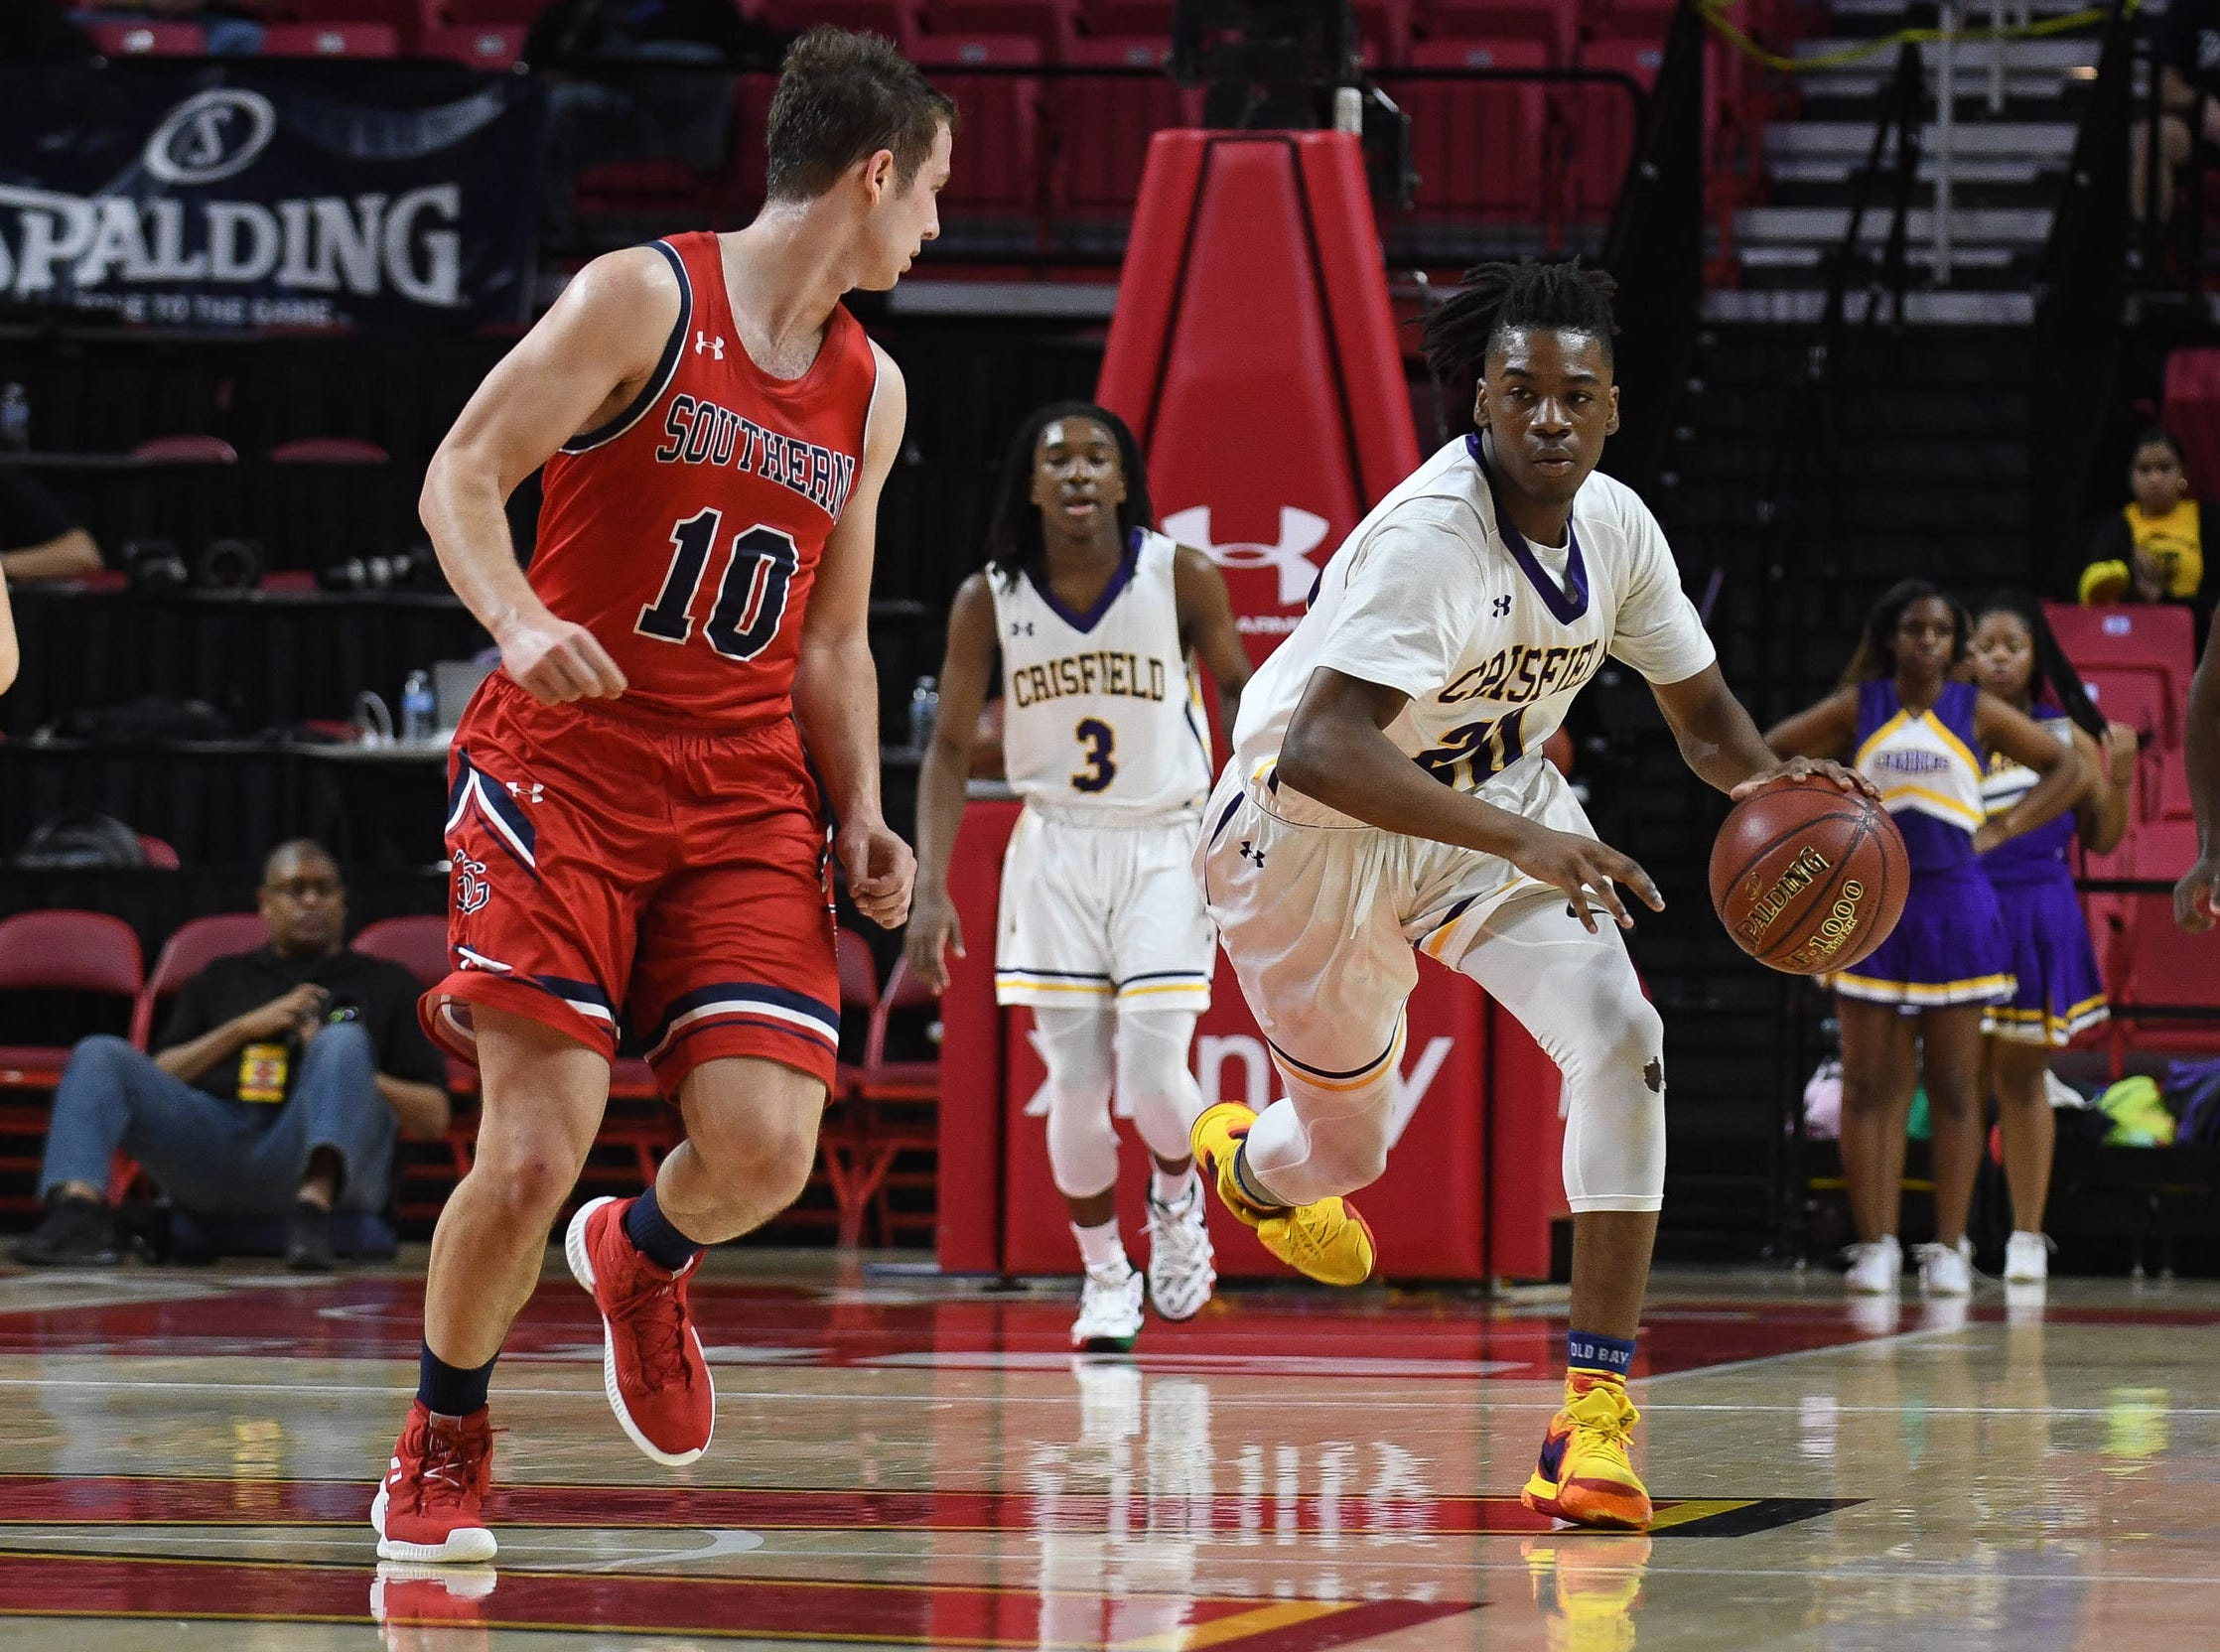 Crisfield's Christian Crawford with the take away against Southern-Garrett during the MPSSAA State Championships at the Xfinity Center in College Park, Md. on Friday, March 15, 2019.